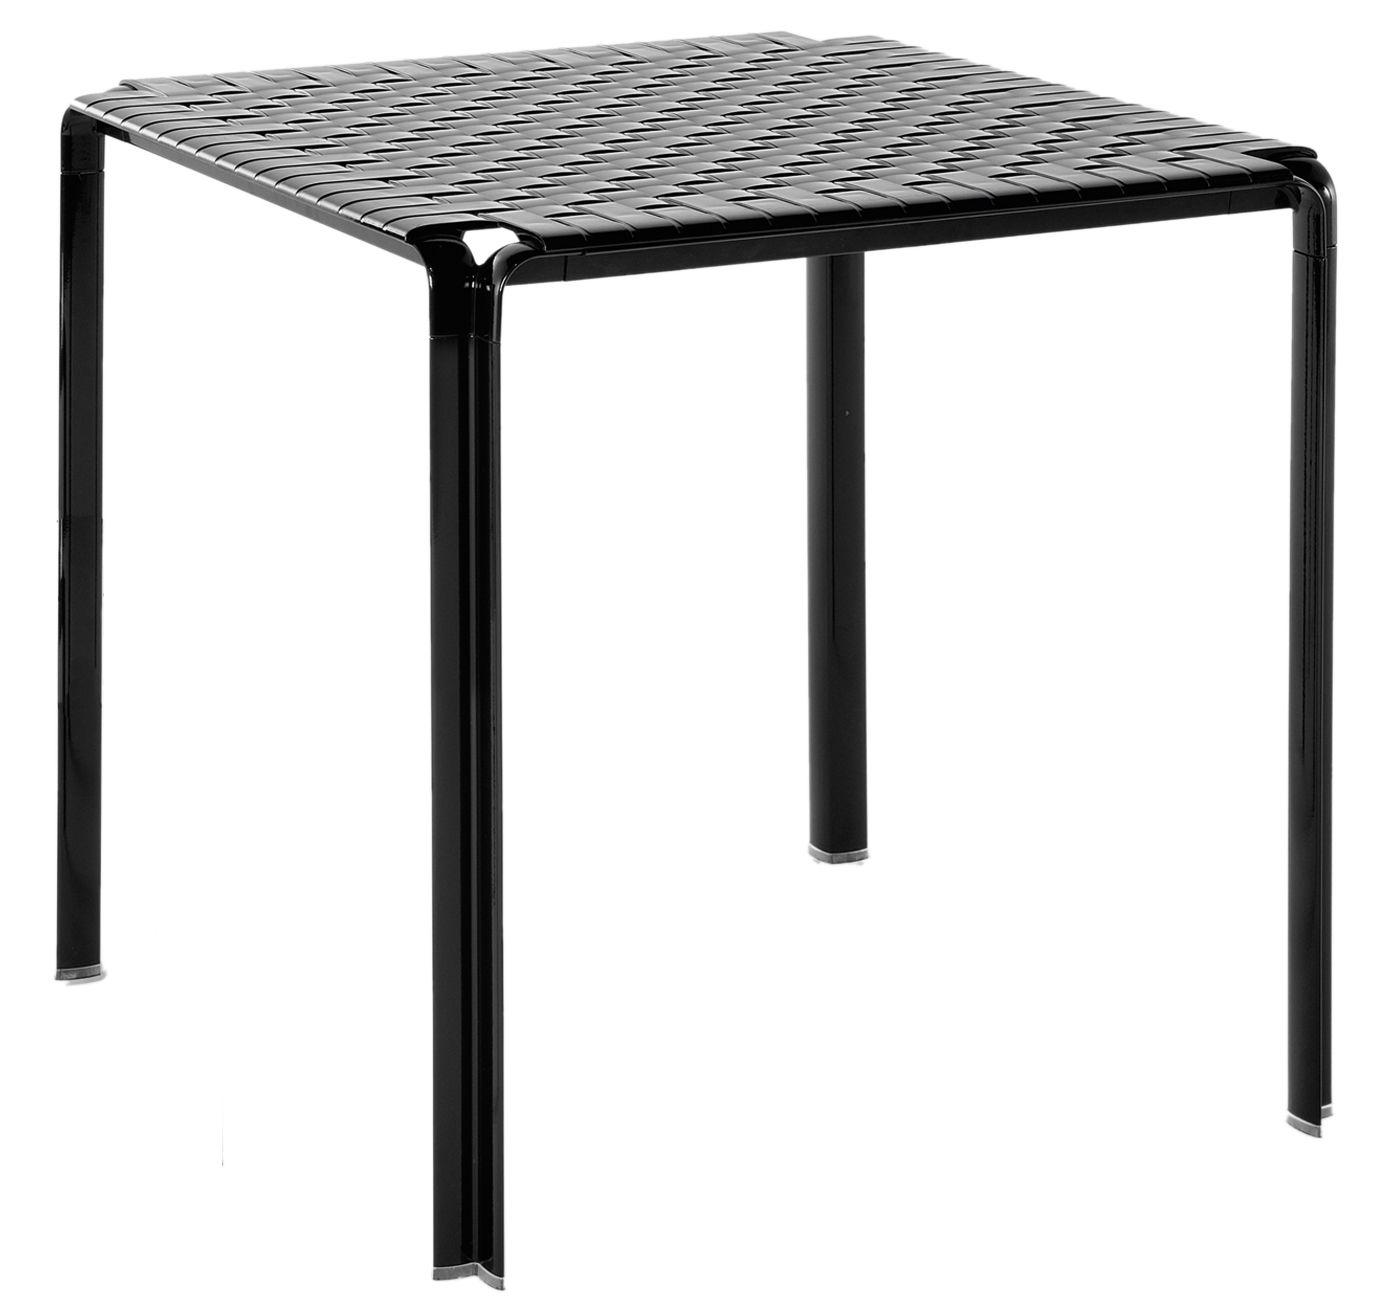 Outdoor - Garden Tables - Ami Ami Square table by Kartell - Black - Aluminium, Polycarbonate